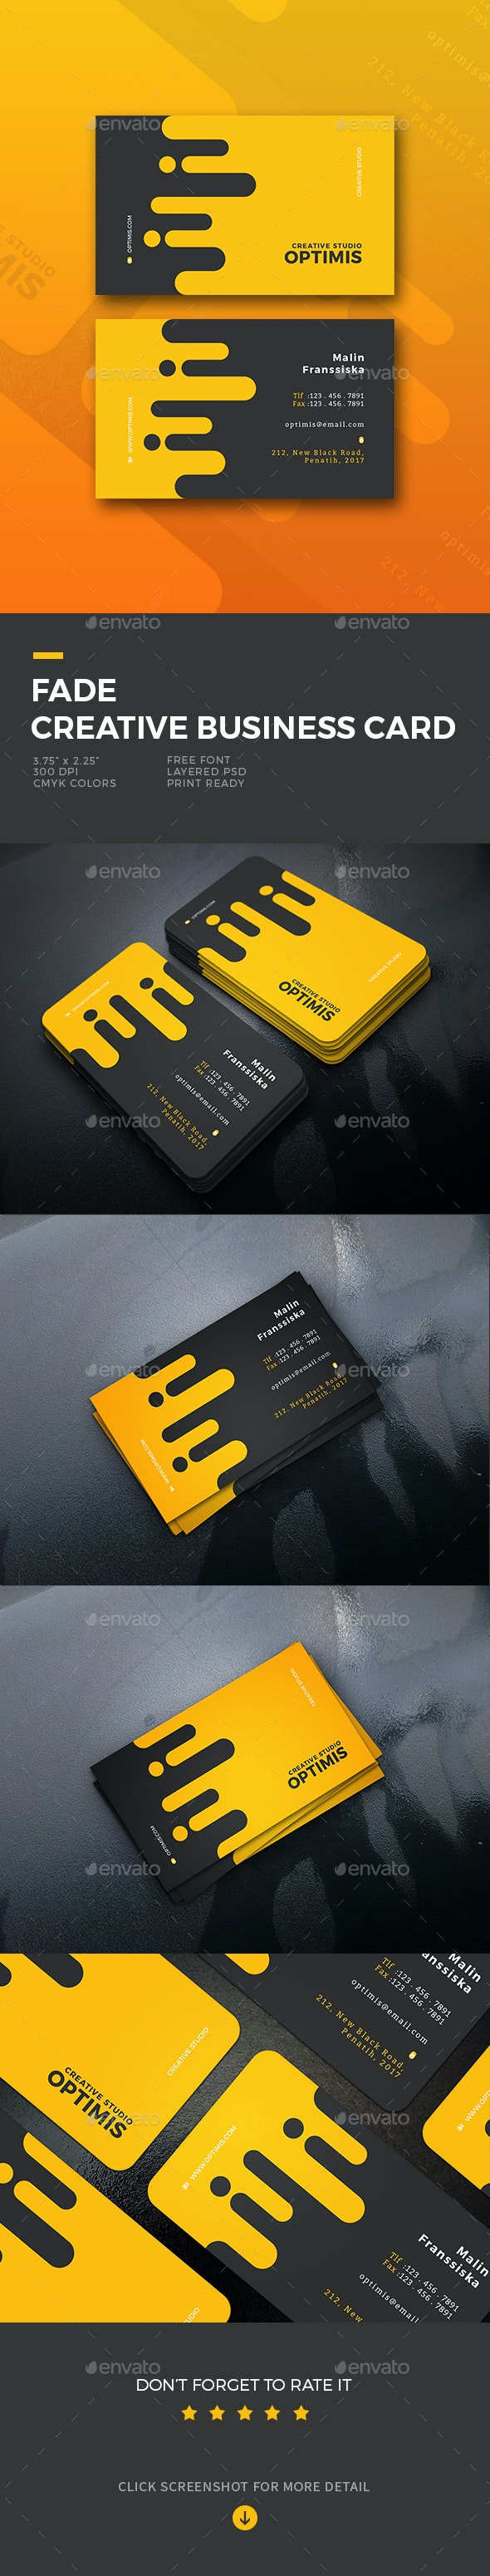 Fade Creative Business Card - Business Cards Print Templates